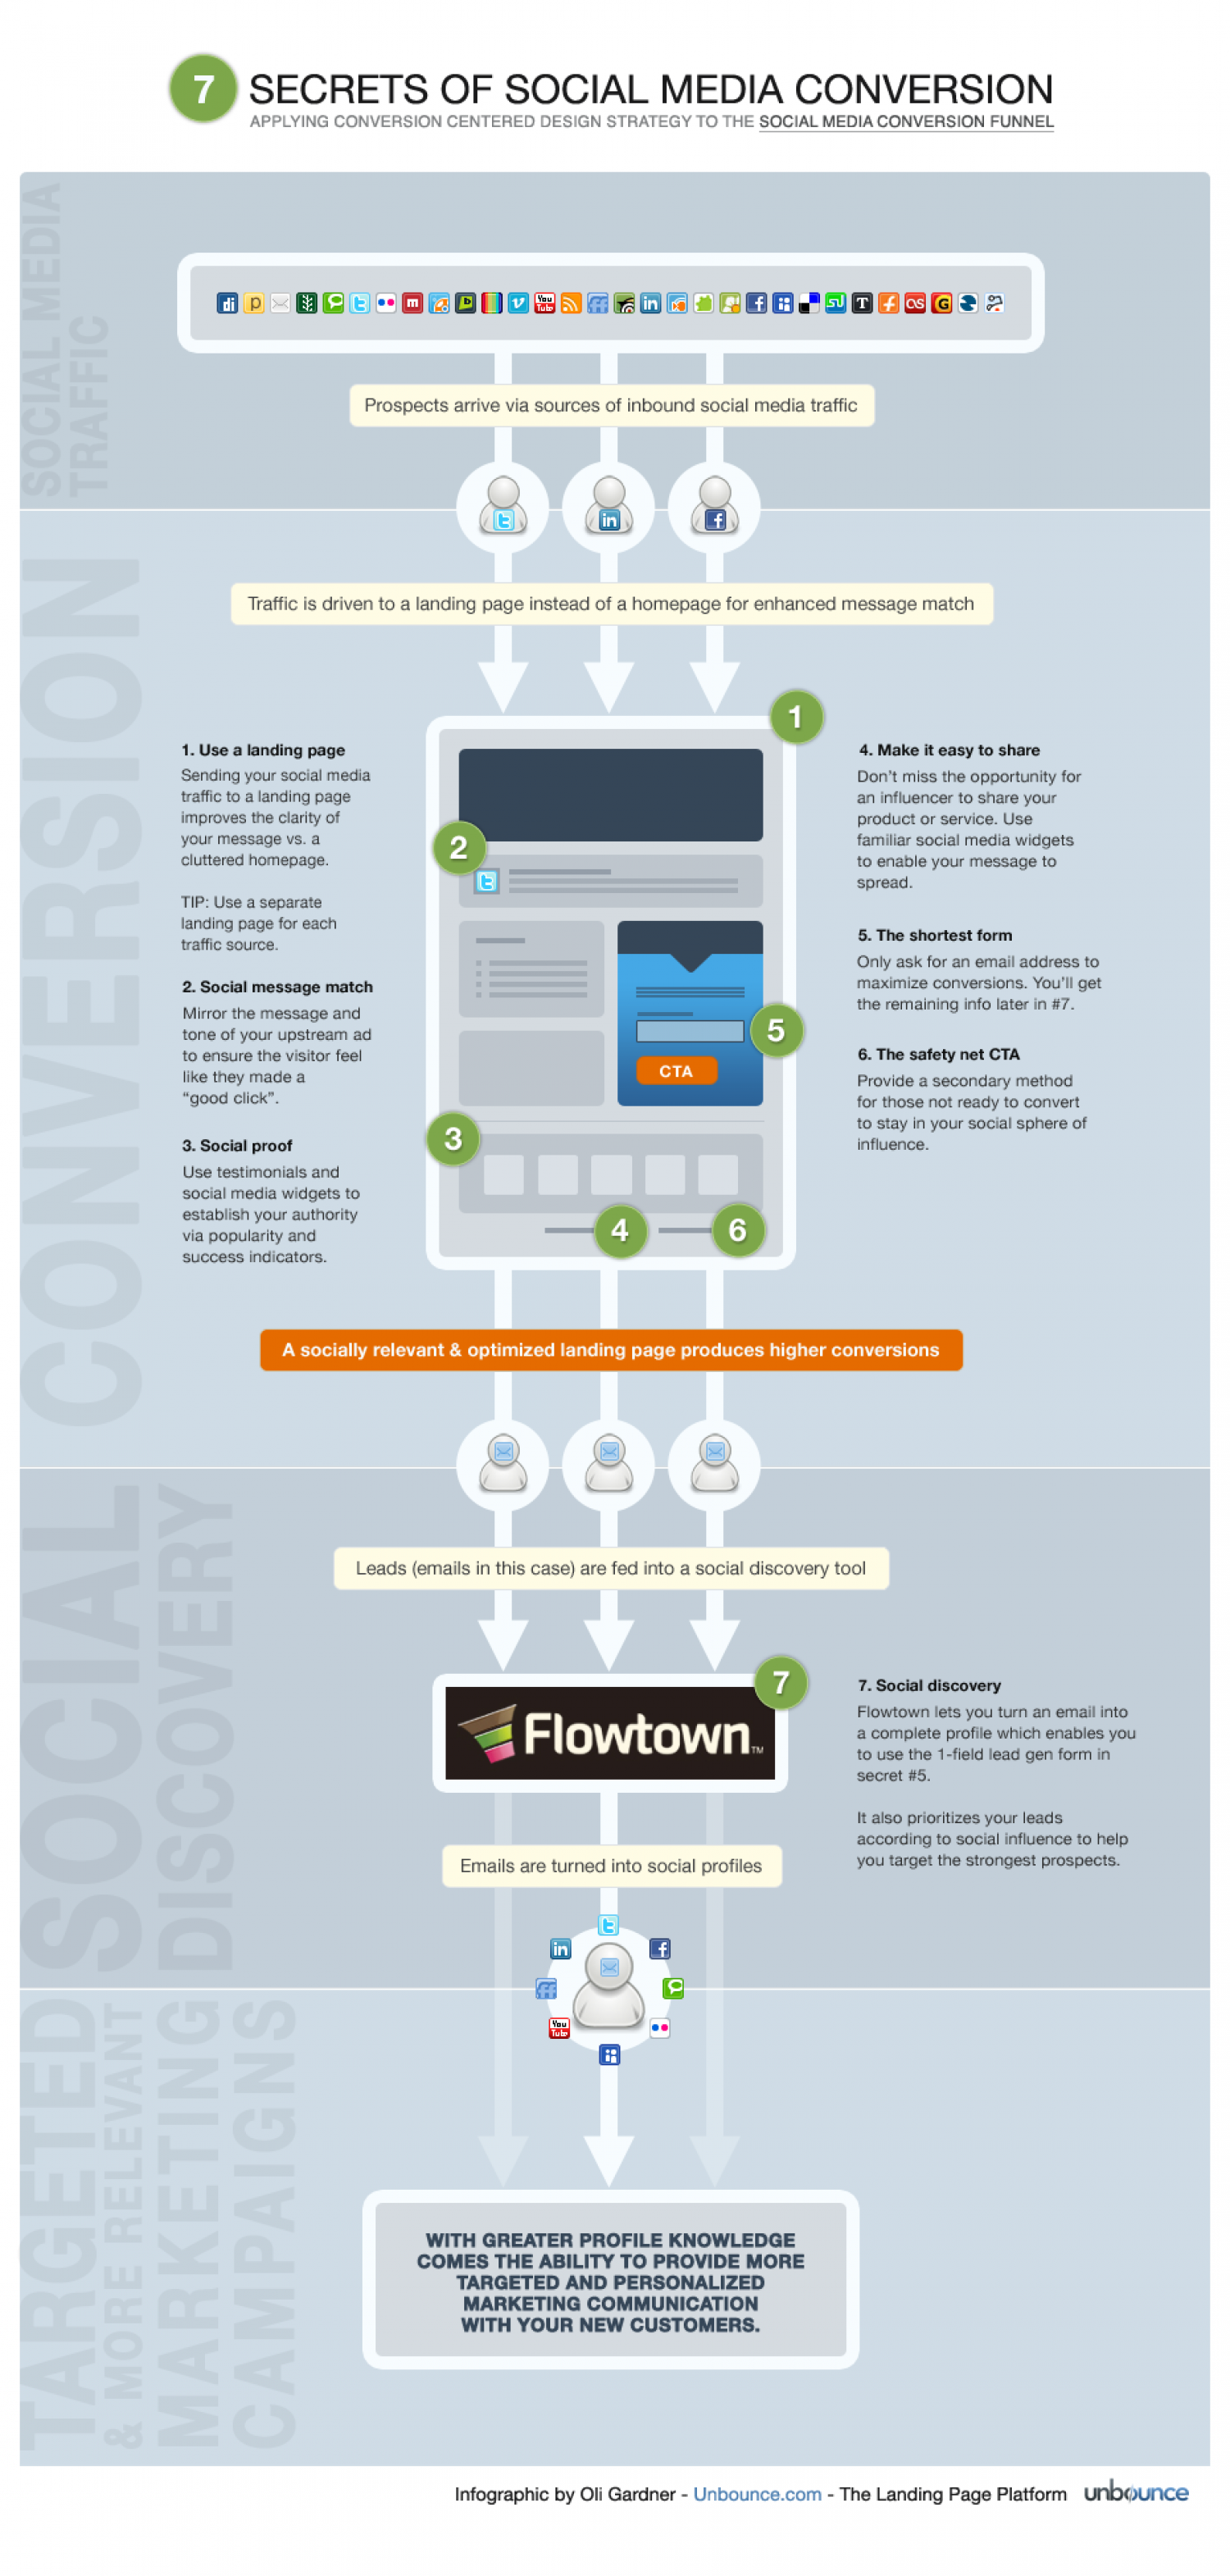 7 Secrets of Social Media Conversion Infographic